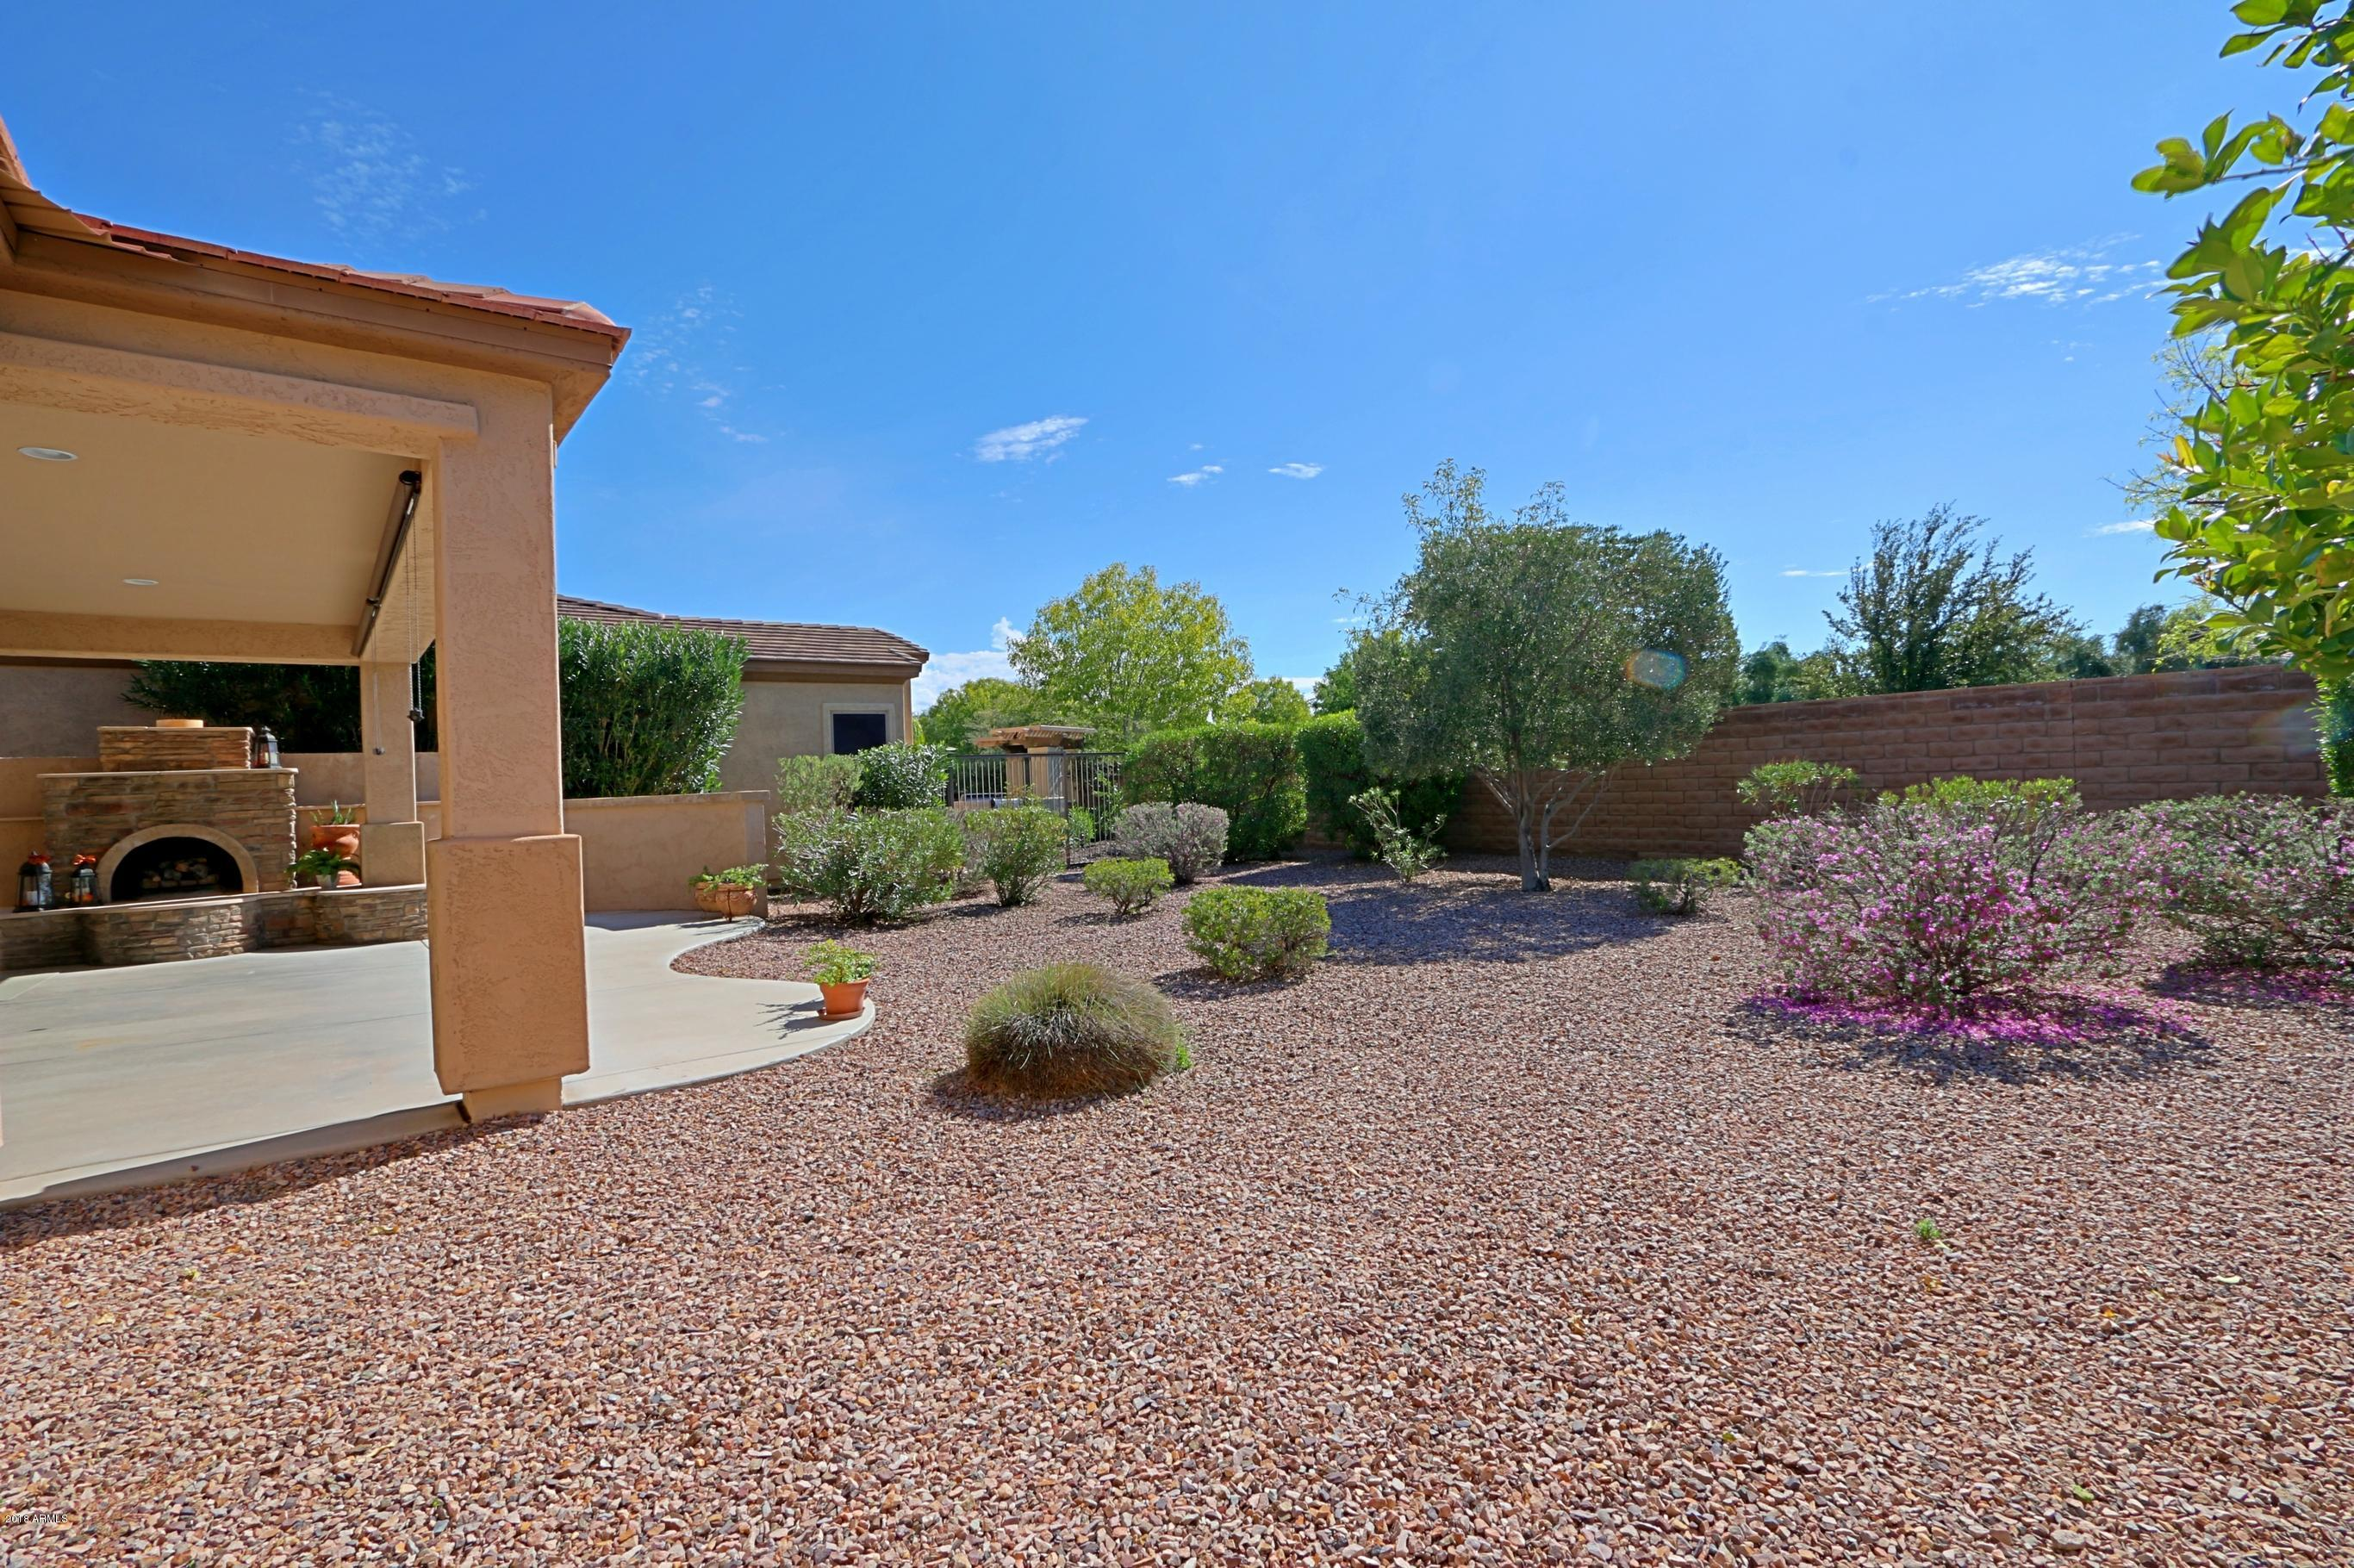 MLS 5838060 12909 W YELLOW BIRD Lane, Peoria, AZ 85383 Peoria AZ REO Bank Owned Foreclosure